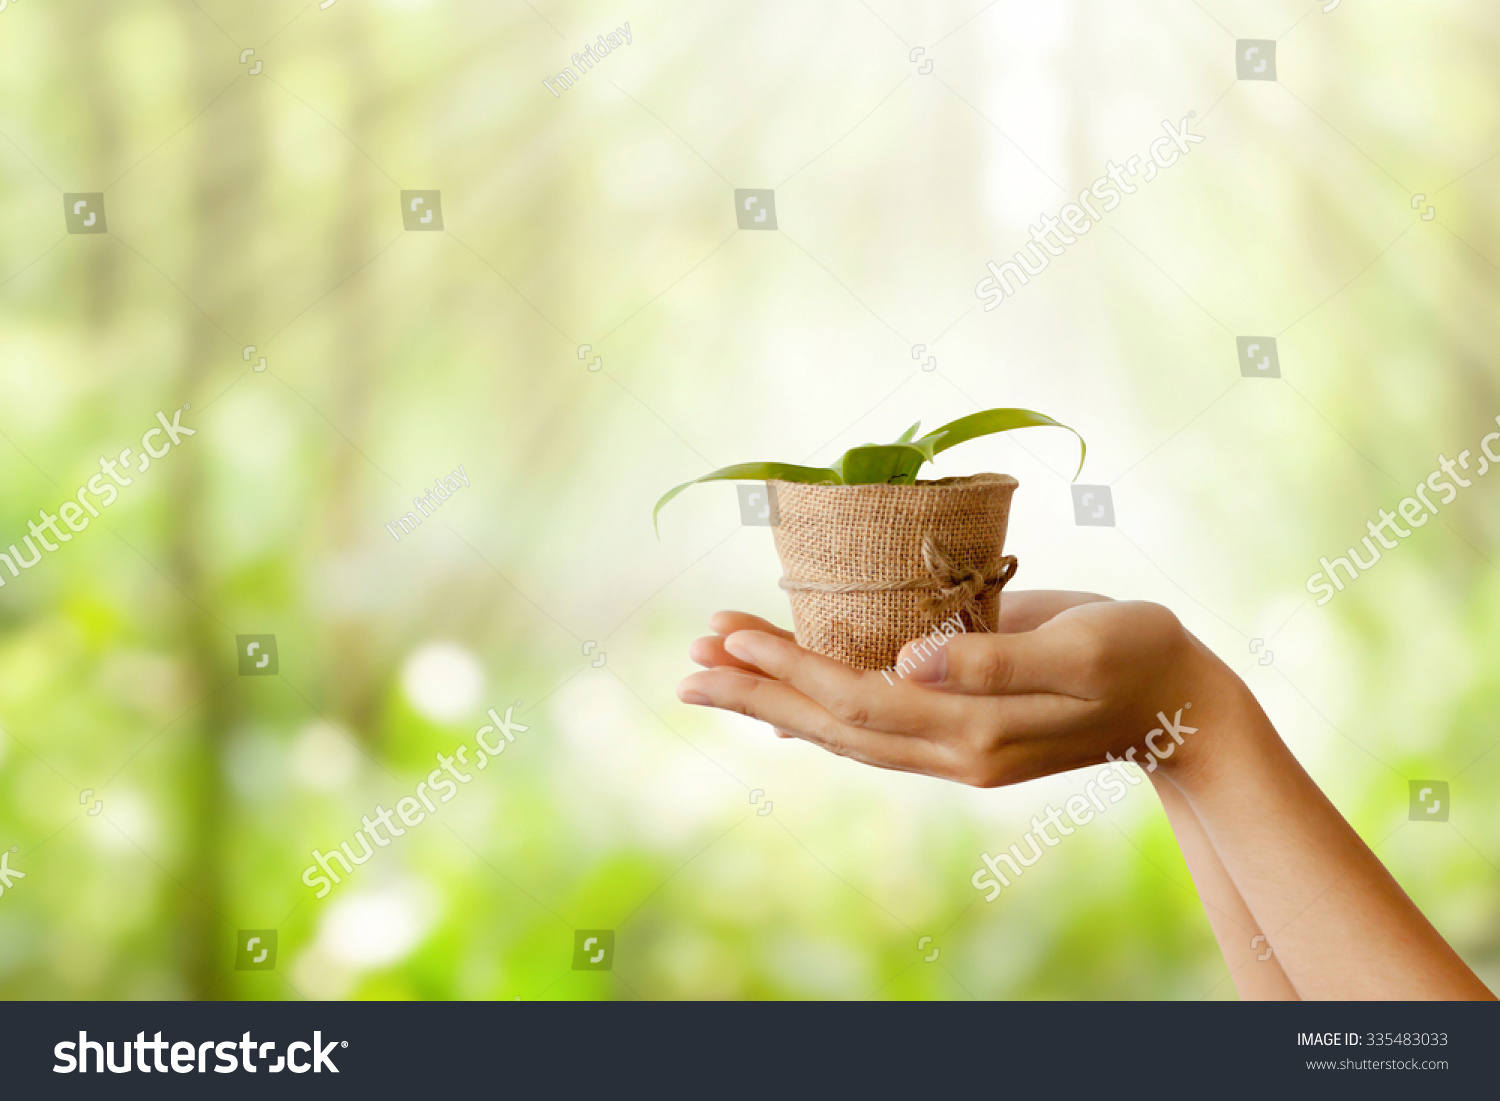 essay about taking care of nature It is here that protection and care is  short essay on the importance of good health  health cannot be achieved merely by taking one or two pills everyday or.